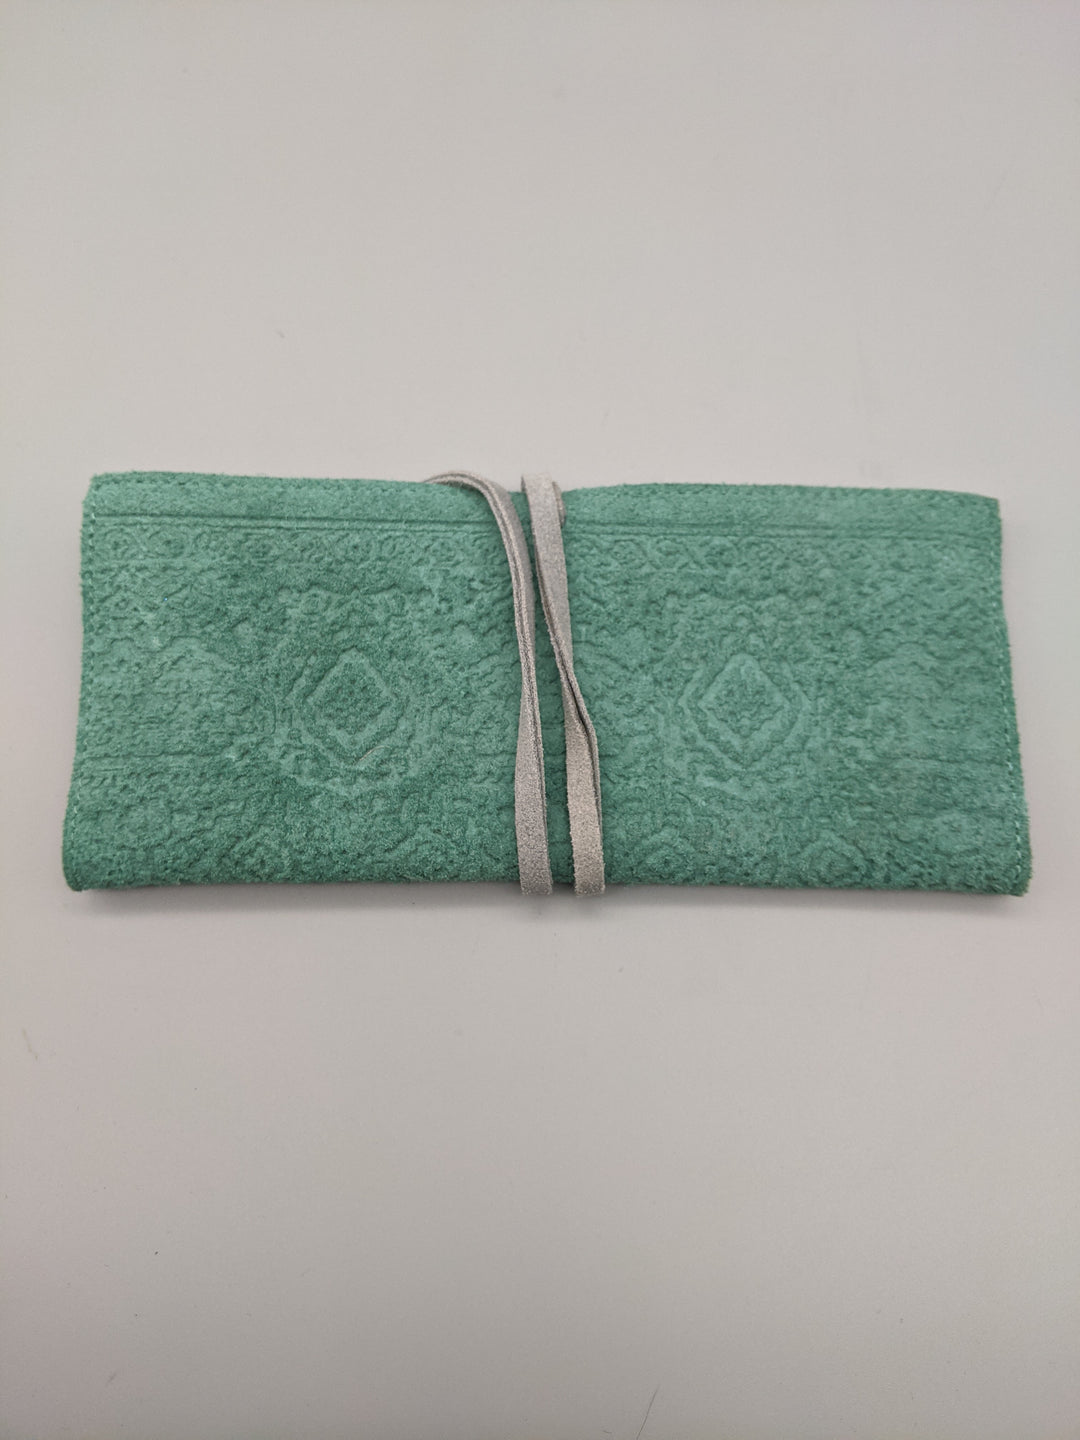 Primary Photo - BRAND: ANTHROPOLOGIE <BR>STYLE: WALLET <BR>COLOR: TURQUOISE <BR>SIZE: MEDIUM <BR>OTHER INFO: NWT WRAP <BR>SKU: 115-115302-17672